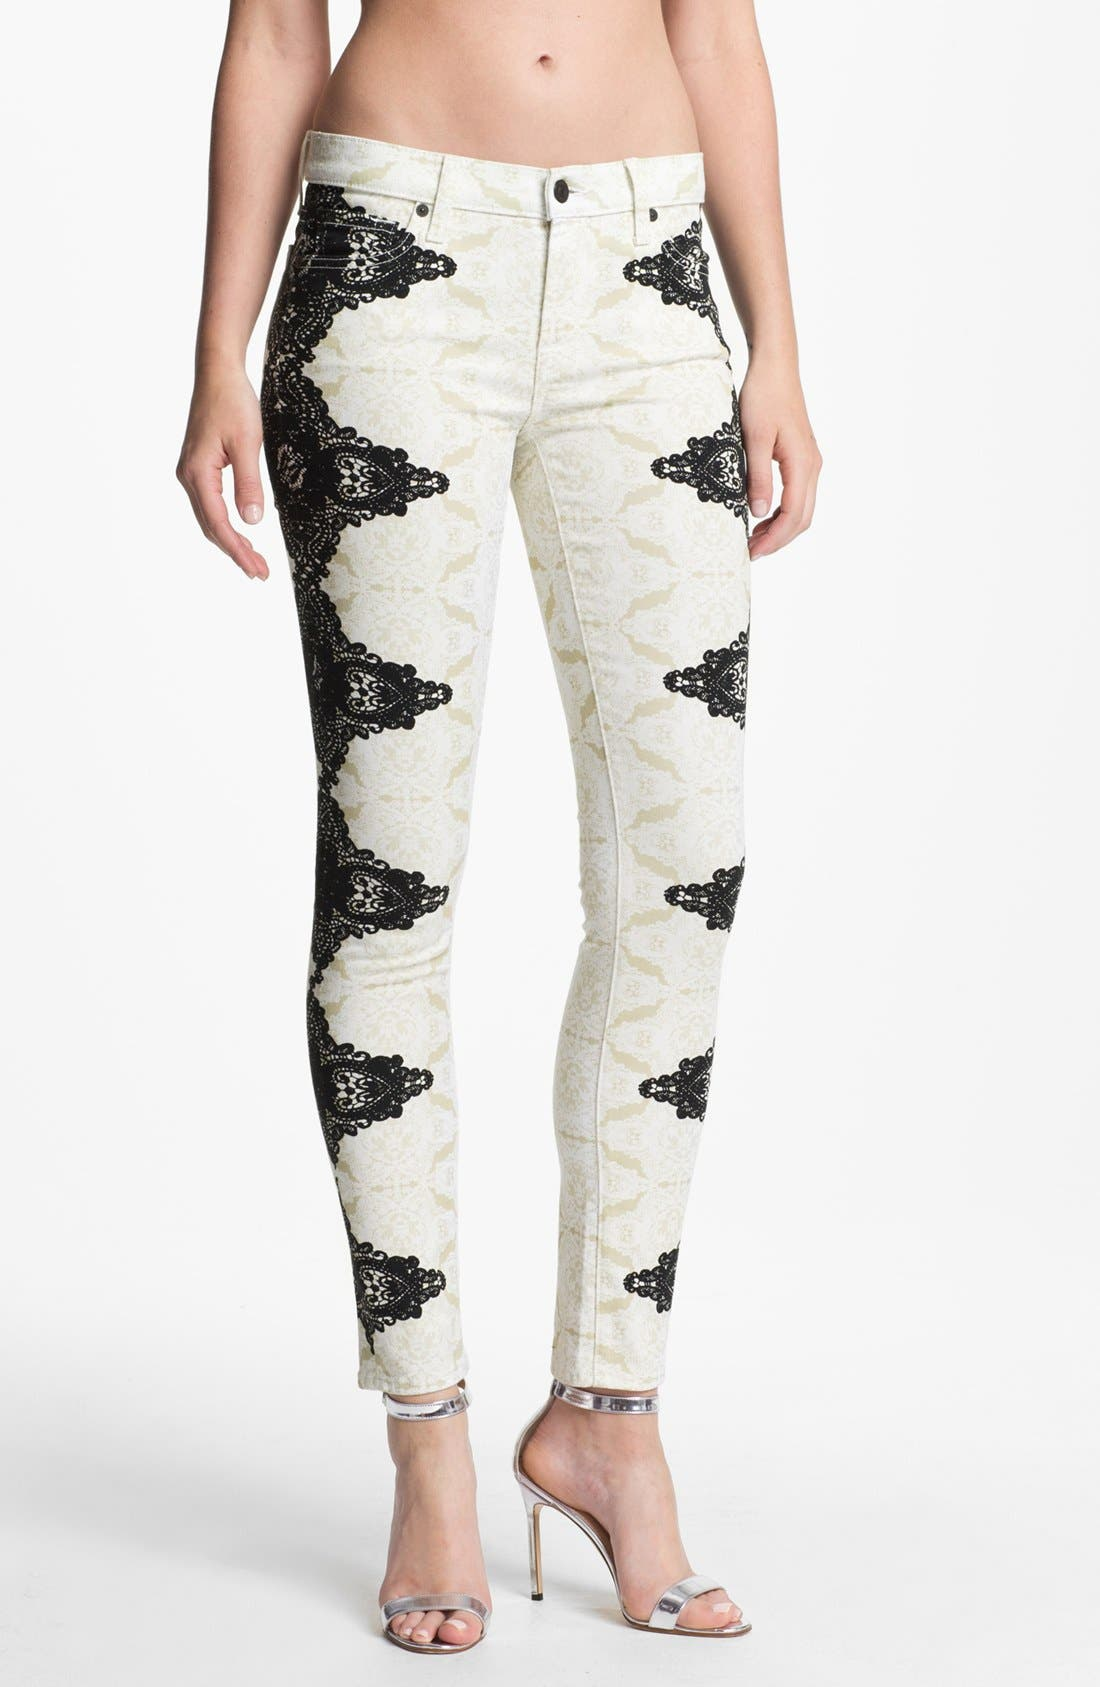 Alternate Image 1 Selected - 7 For All Mankind® 'The Skinny' Placement Print Jeans (Lace on Lace)